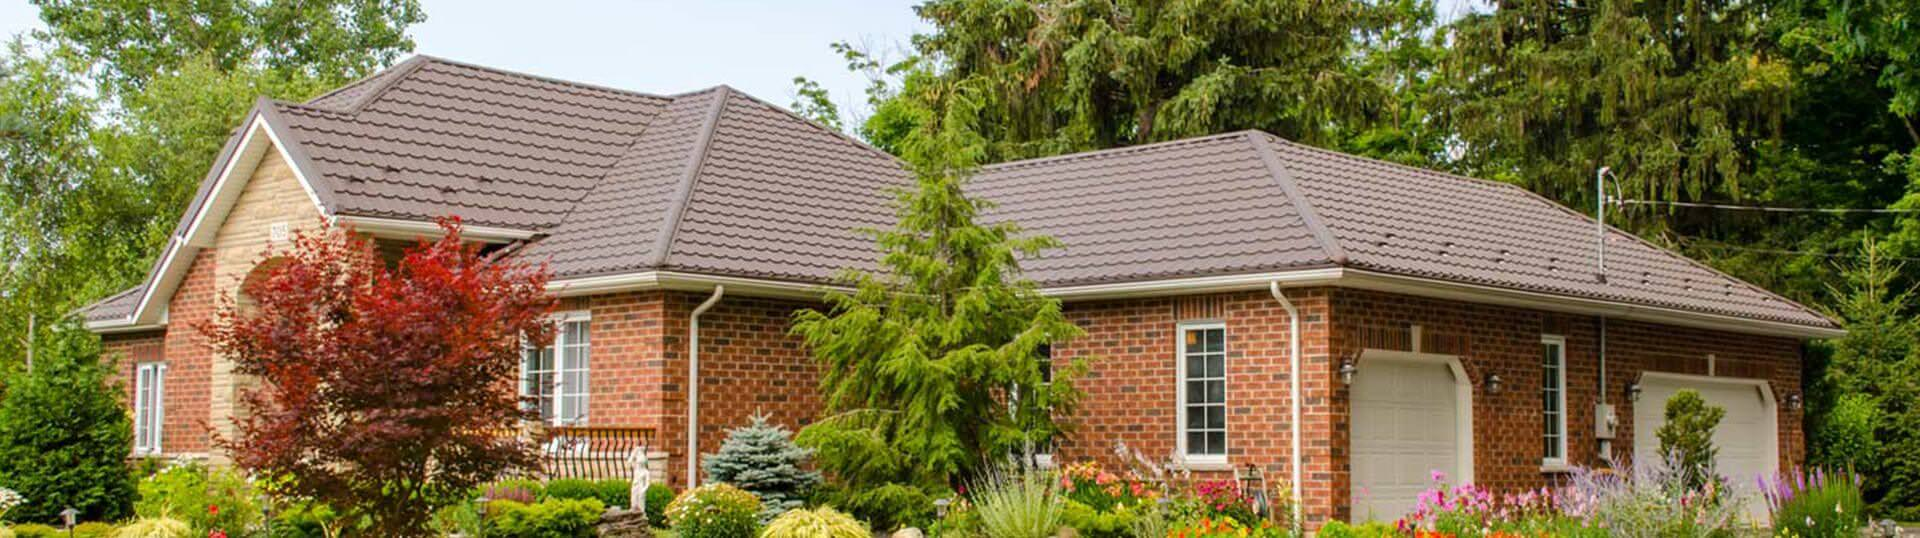 Metal Roofing Slider Image Kitchener, Ontario